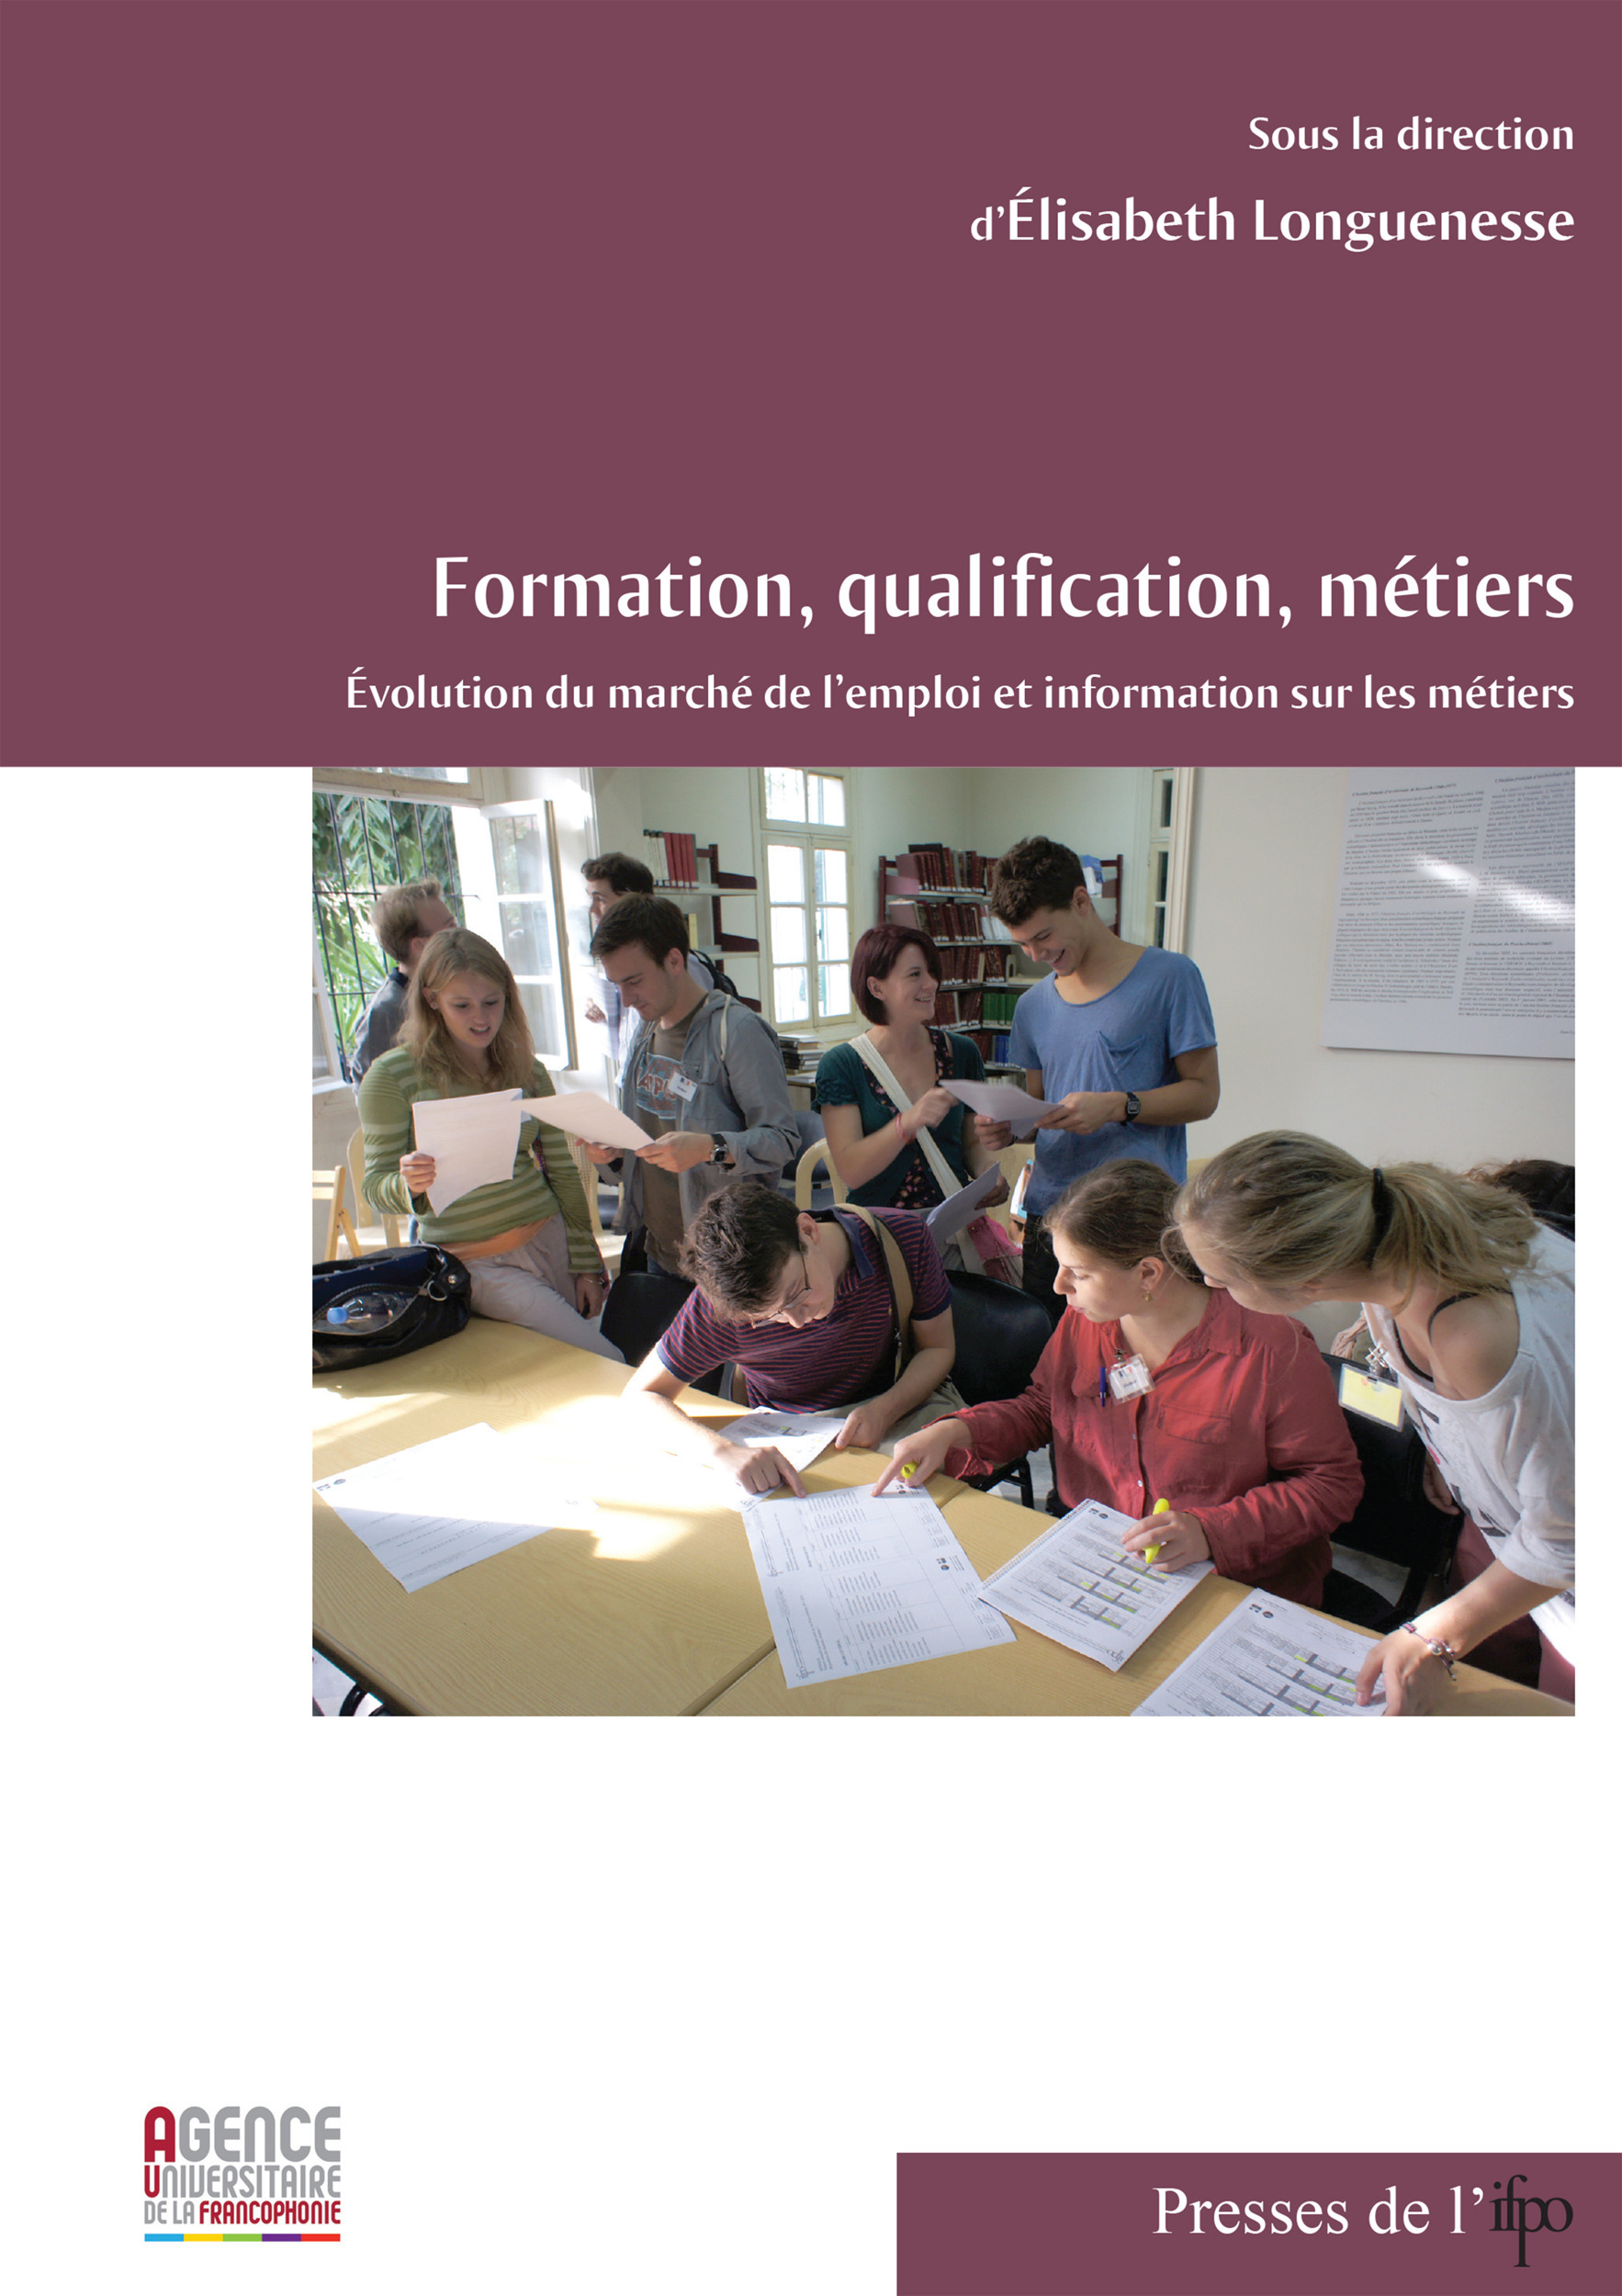 formation, qualification, metiers